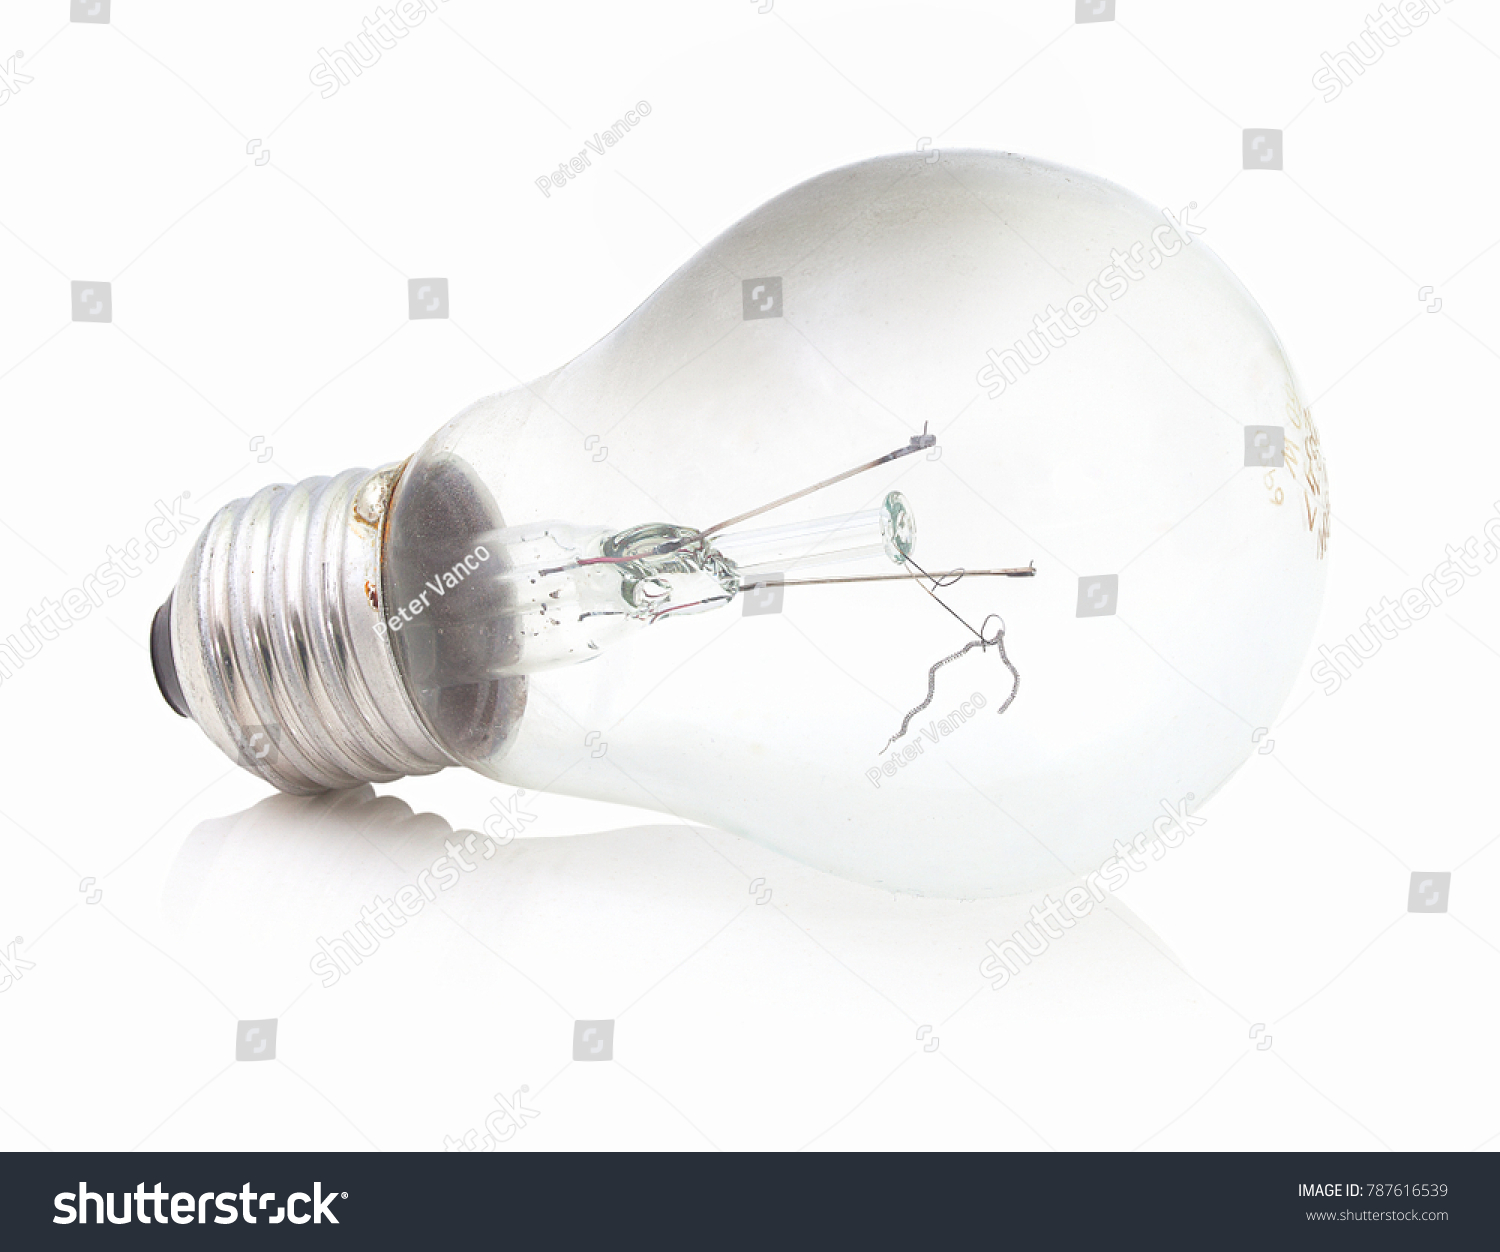 incandescent light bulb and wire resistance To miniaturize the tungsten filaments, the manufacturer coils the filament wire, effectively shortening the length so it will fit in smaller bulb shapes led technology, with its small form factor, long life and high efficiency, is a now an alternative for replacing common miniature bulbs.